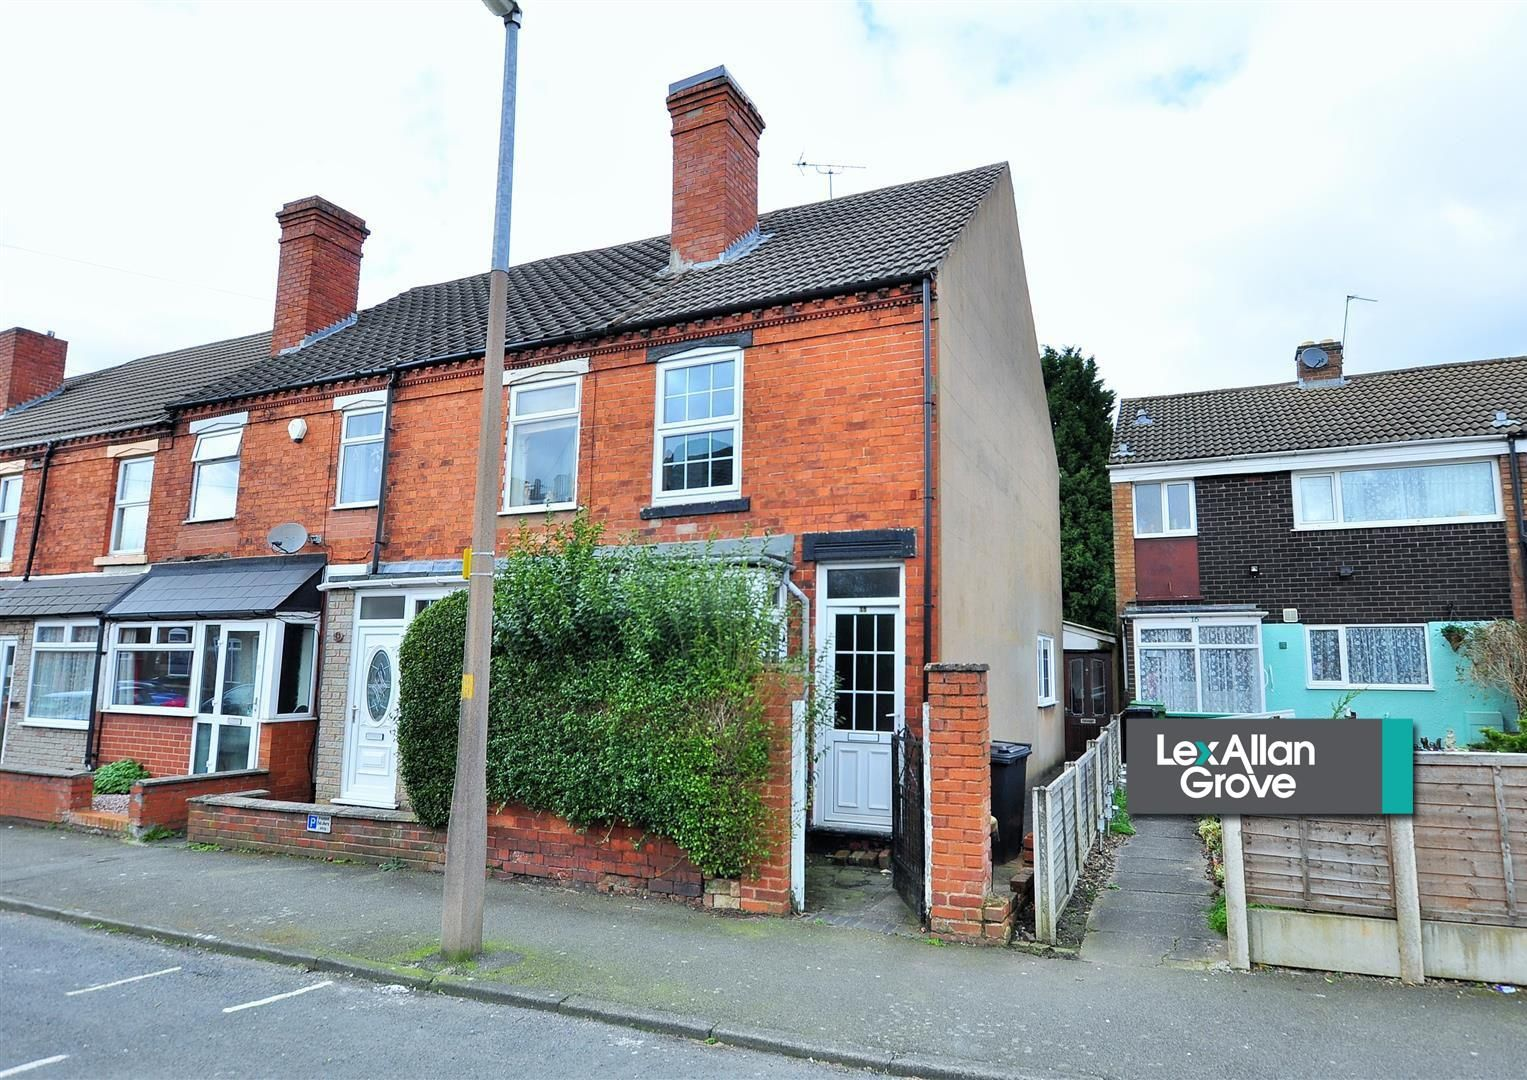 2 bed end-of-terrace for sale, B62